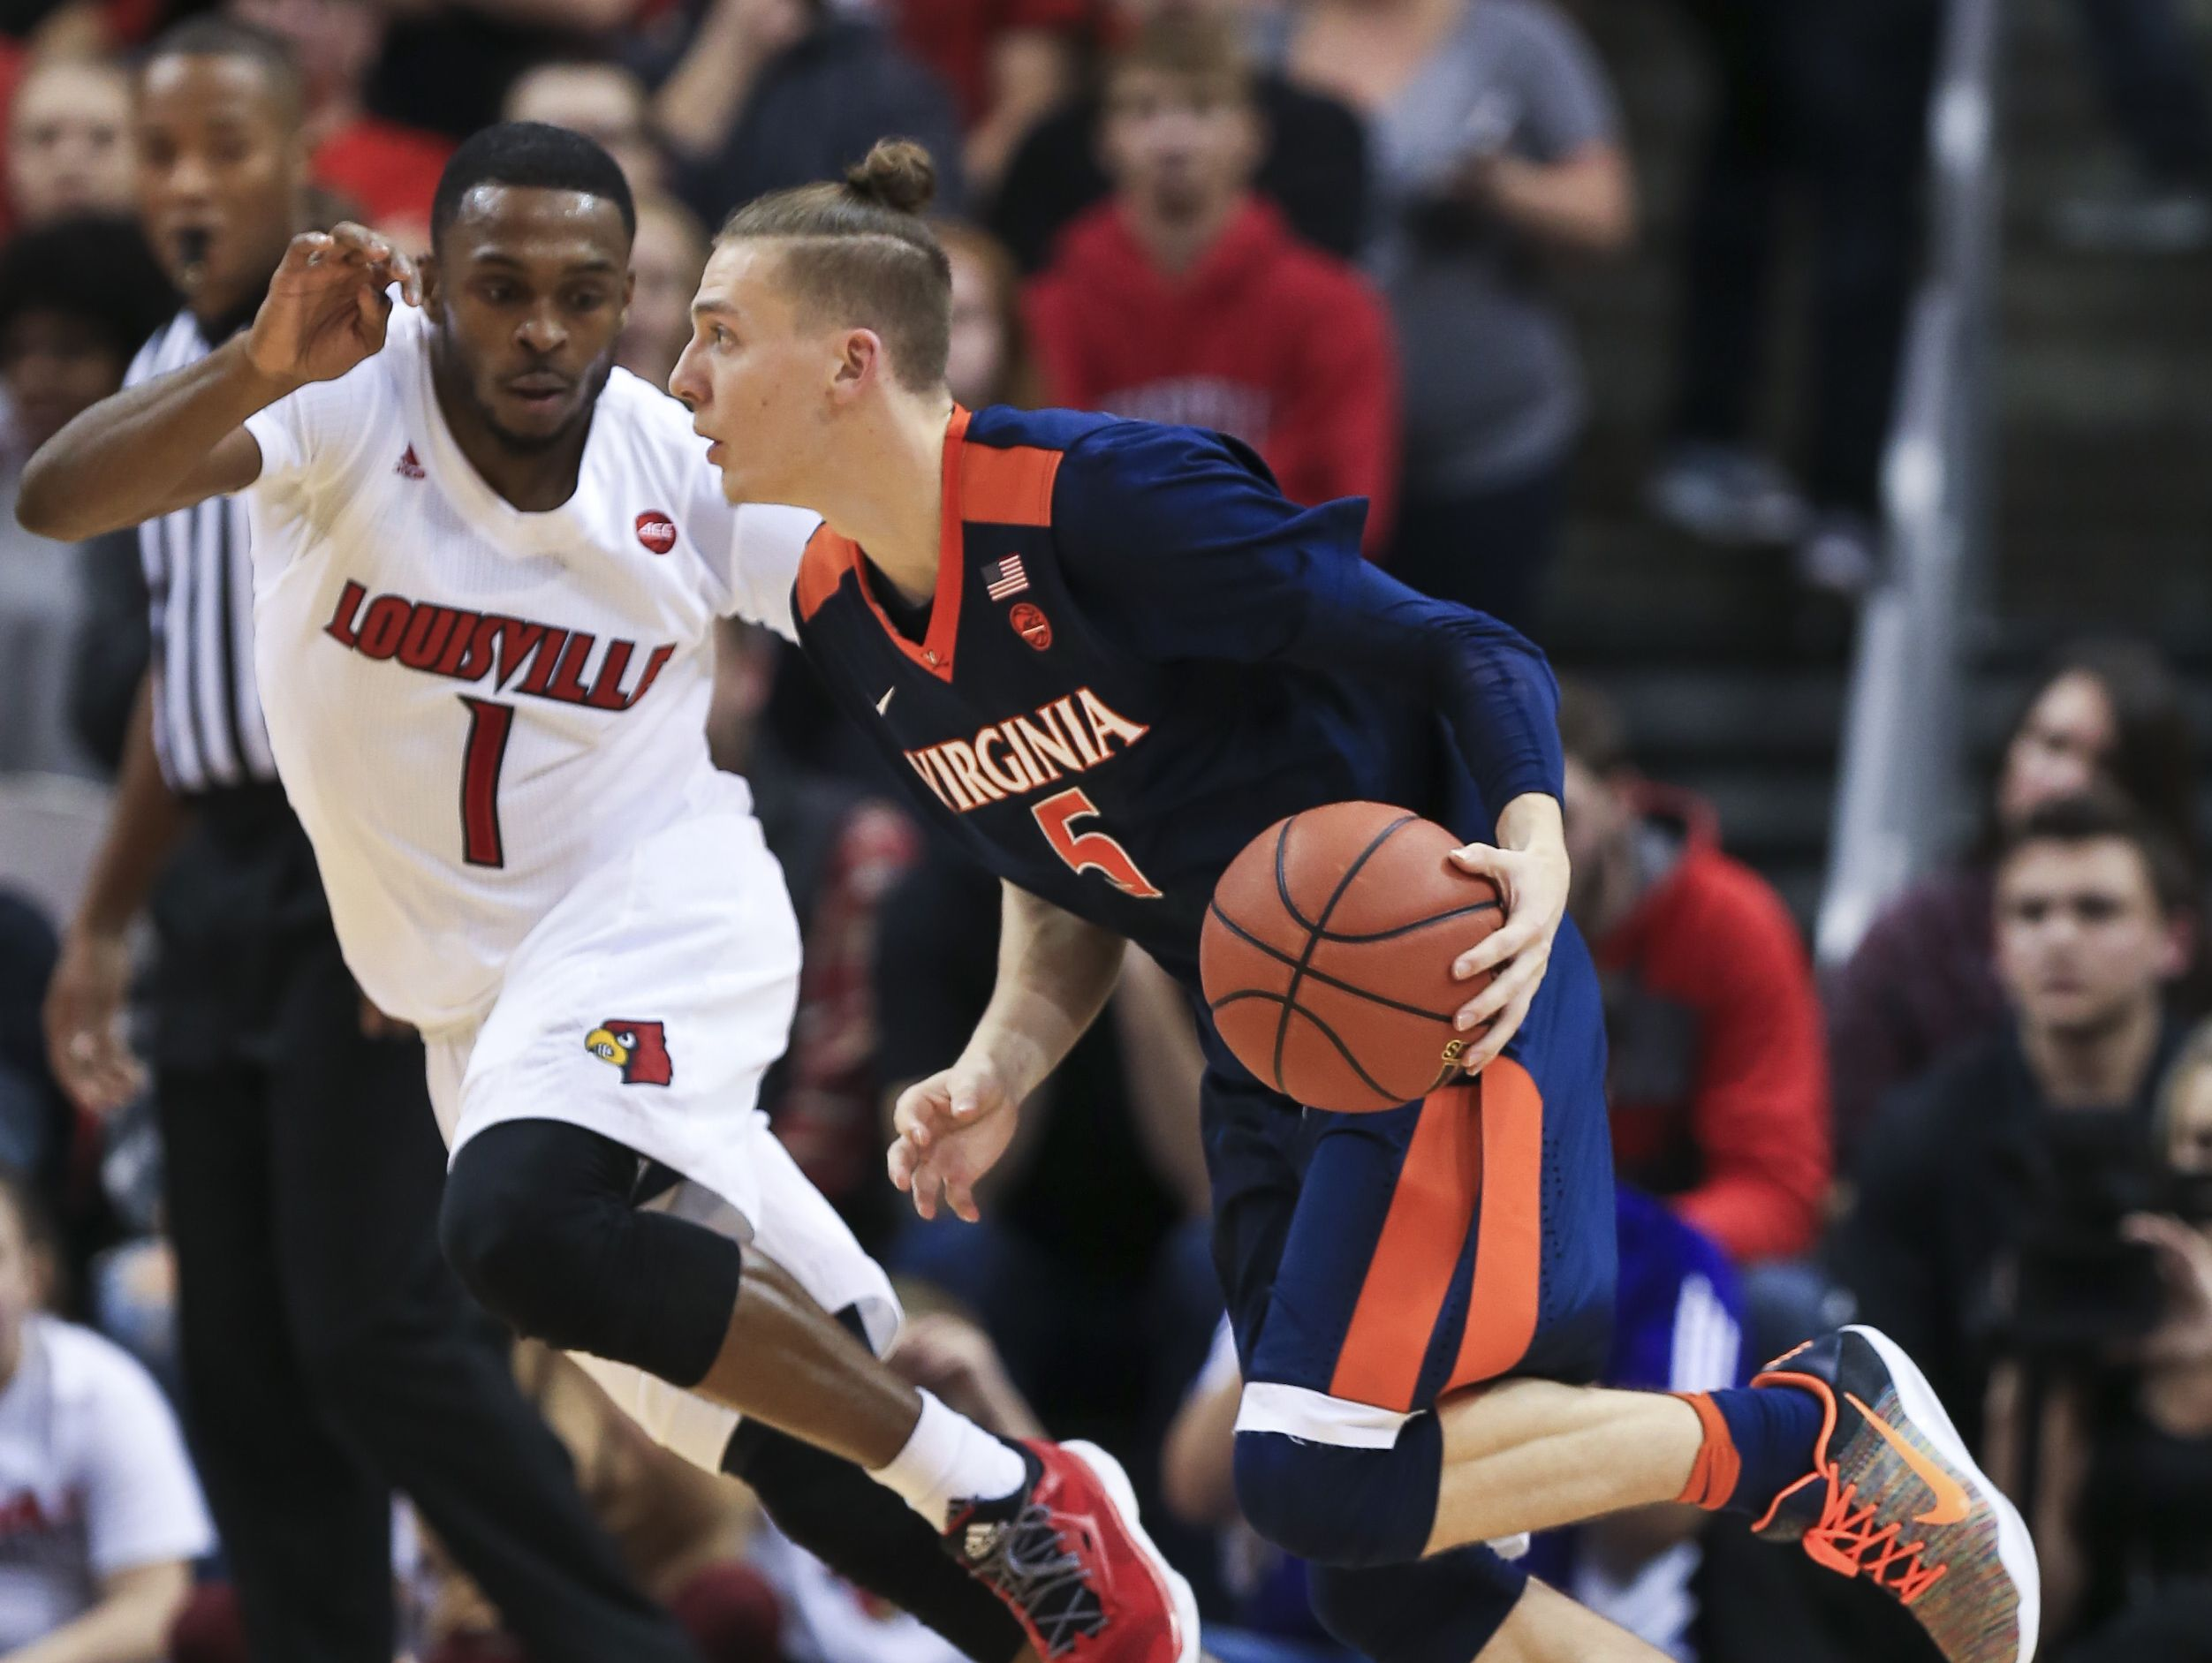 Virginia's Kyle Guy drives past Louisville's Tony Hicks as Guy had nine points in 19 minutes of play in the Cavaliers' win over the Cards 61-53 Wednesday night.